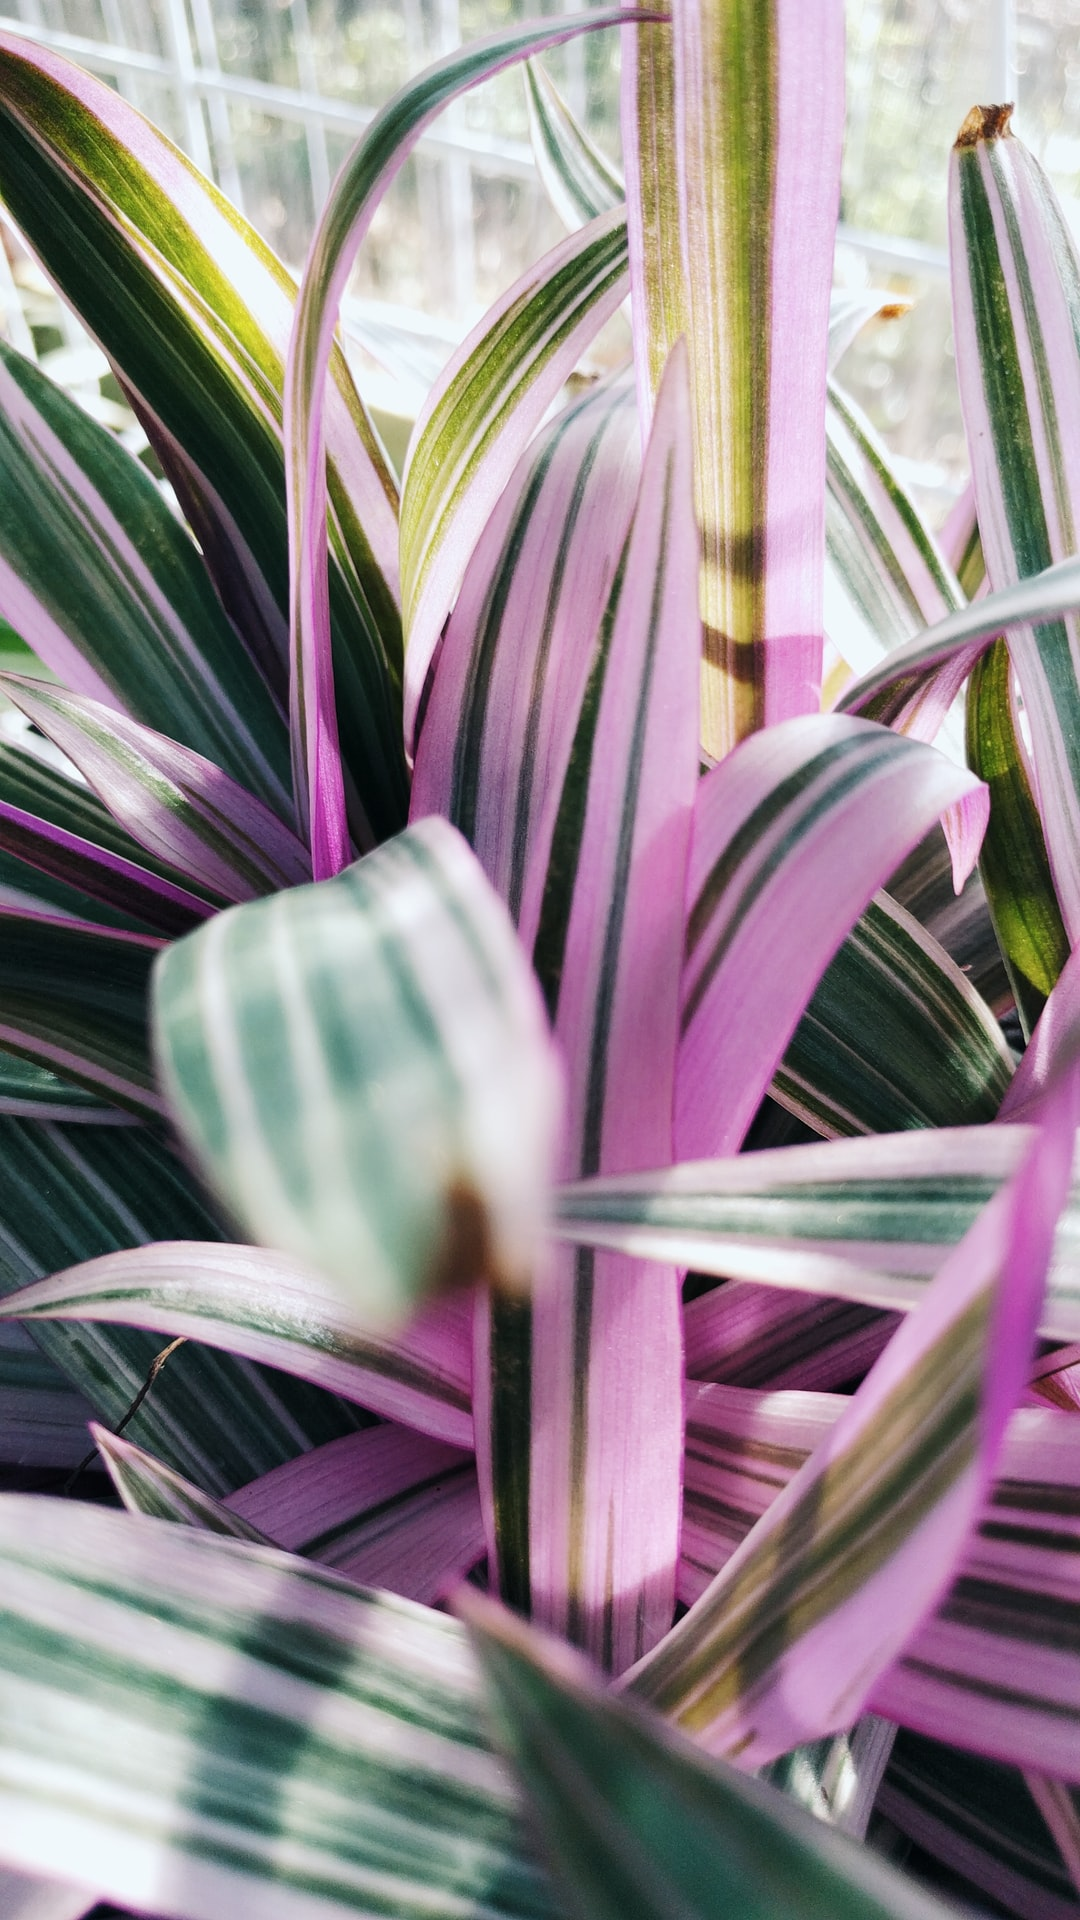 Long, pink-striped foliage of Tradescantia spathacea 'Tricolor' syn. Rhoeo spathacea. Common: Moses-in-the-cradle, boat lily, oyster plant. 2016